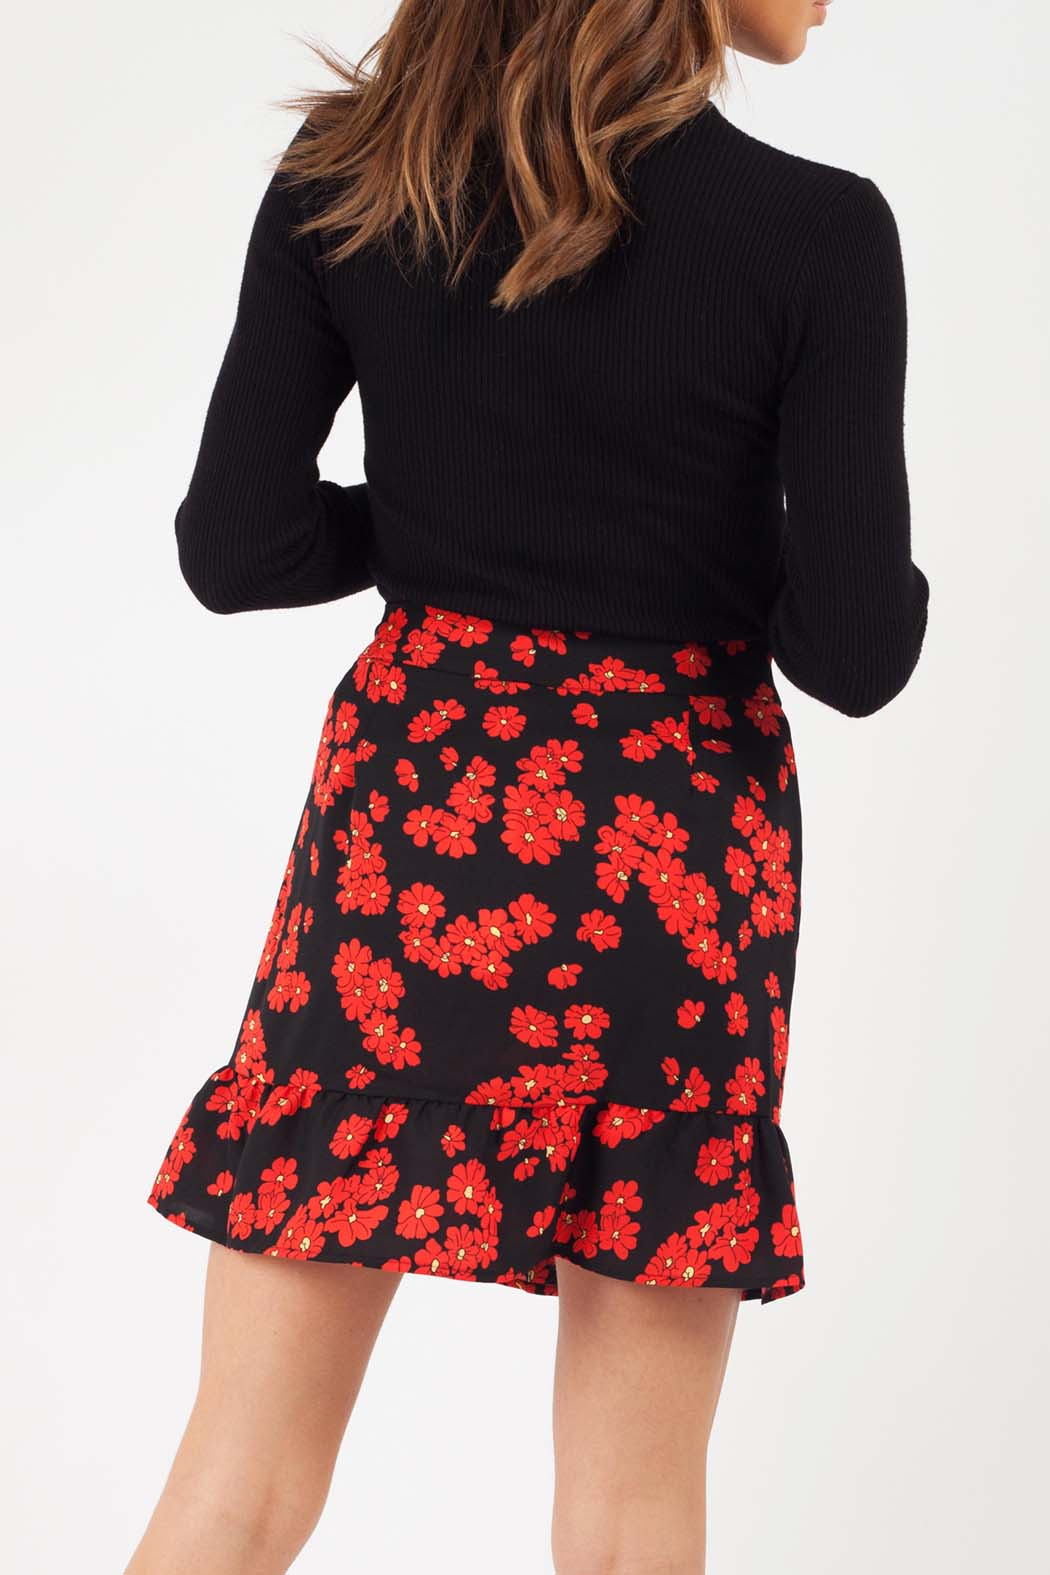 Peony Black and Red Floral Button Through Mini Skirt